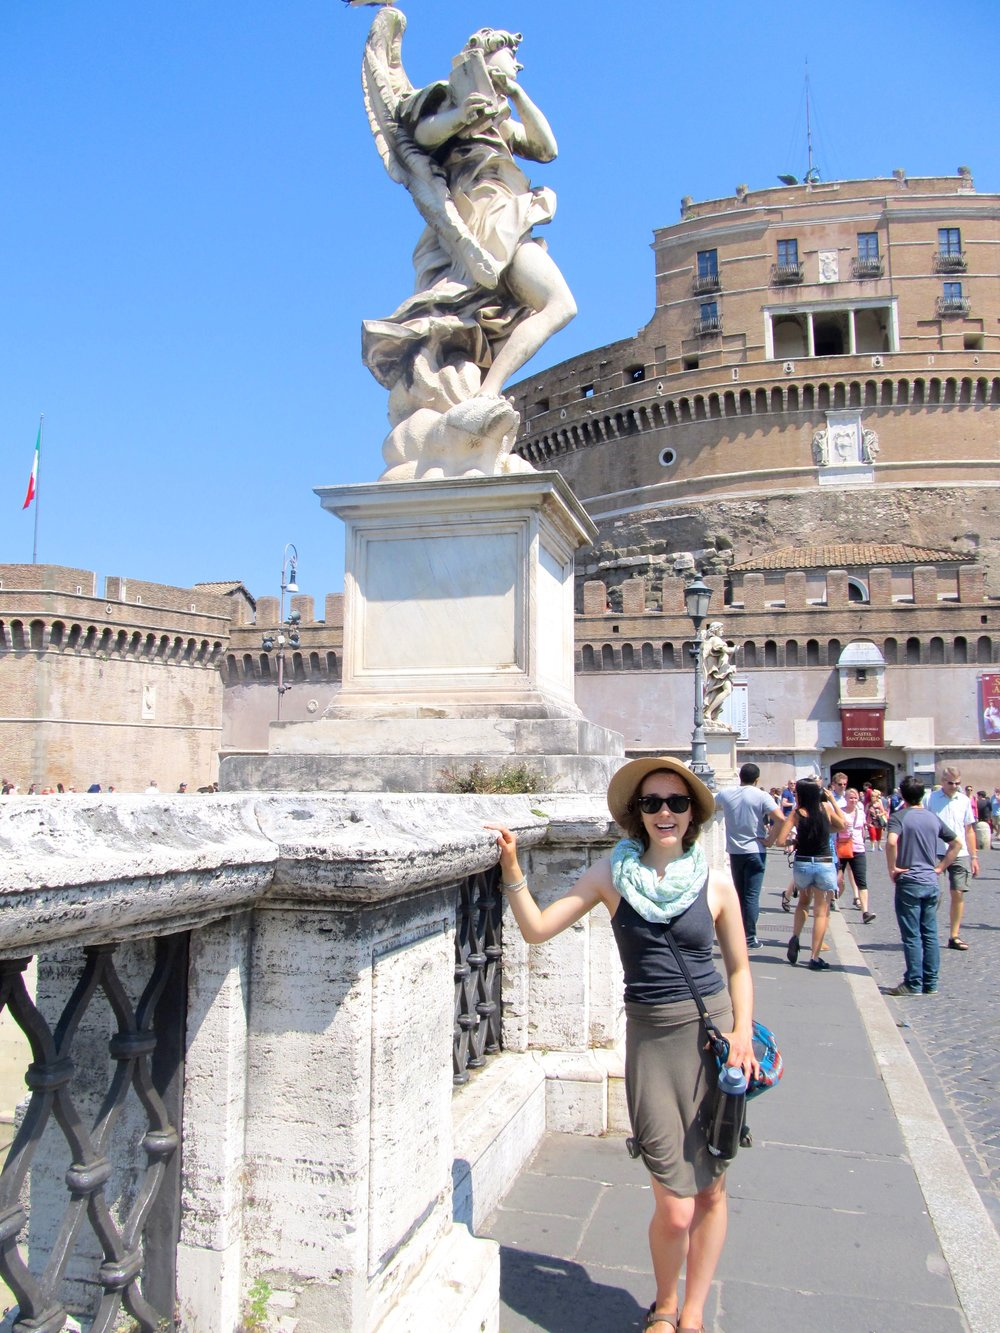 In front of the Castello di Sant'Angelo